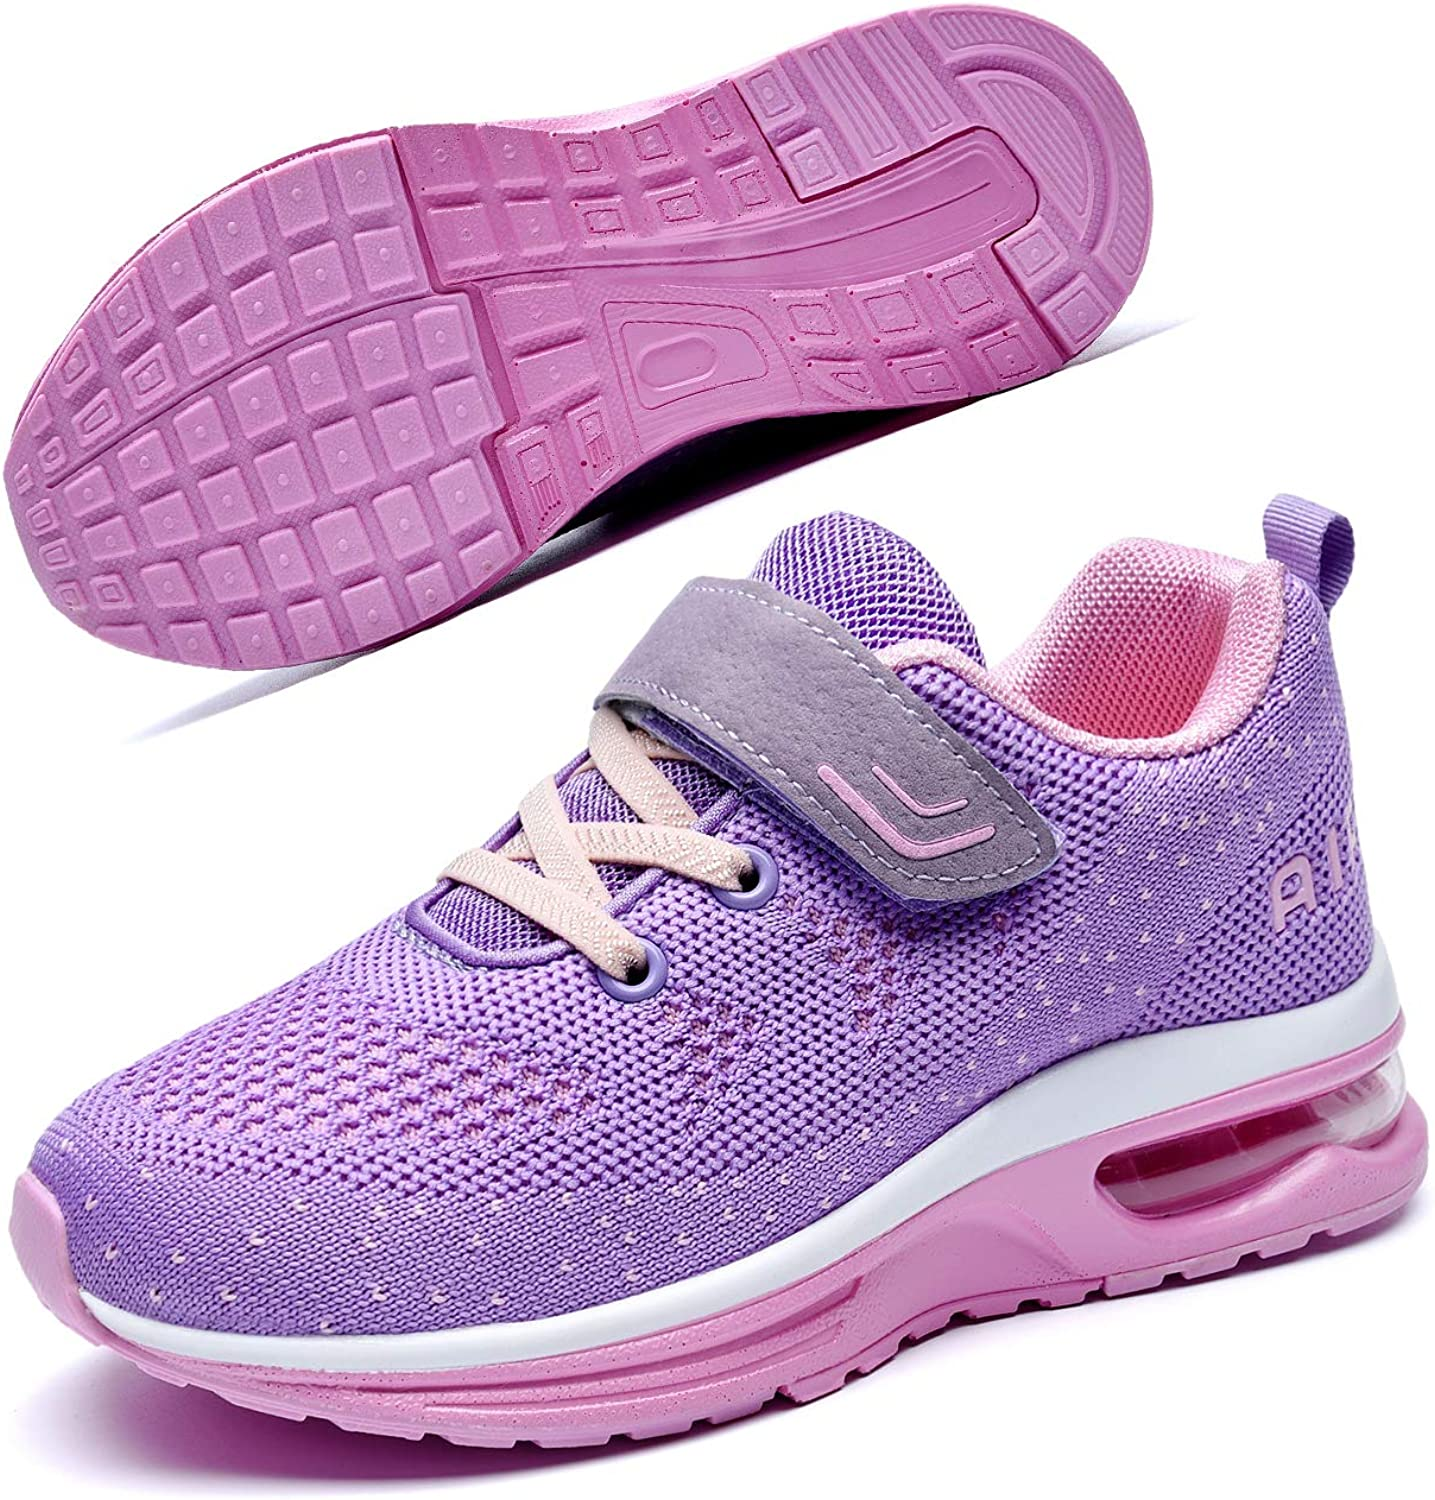 6.5, Pink Kids Sneakers Boys Girls Breathable Lightweight Comfort Running Shoes Outdoor Sneakers Athletic Fashion Shoes Toddler